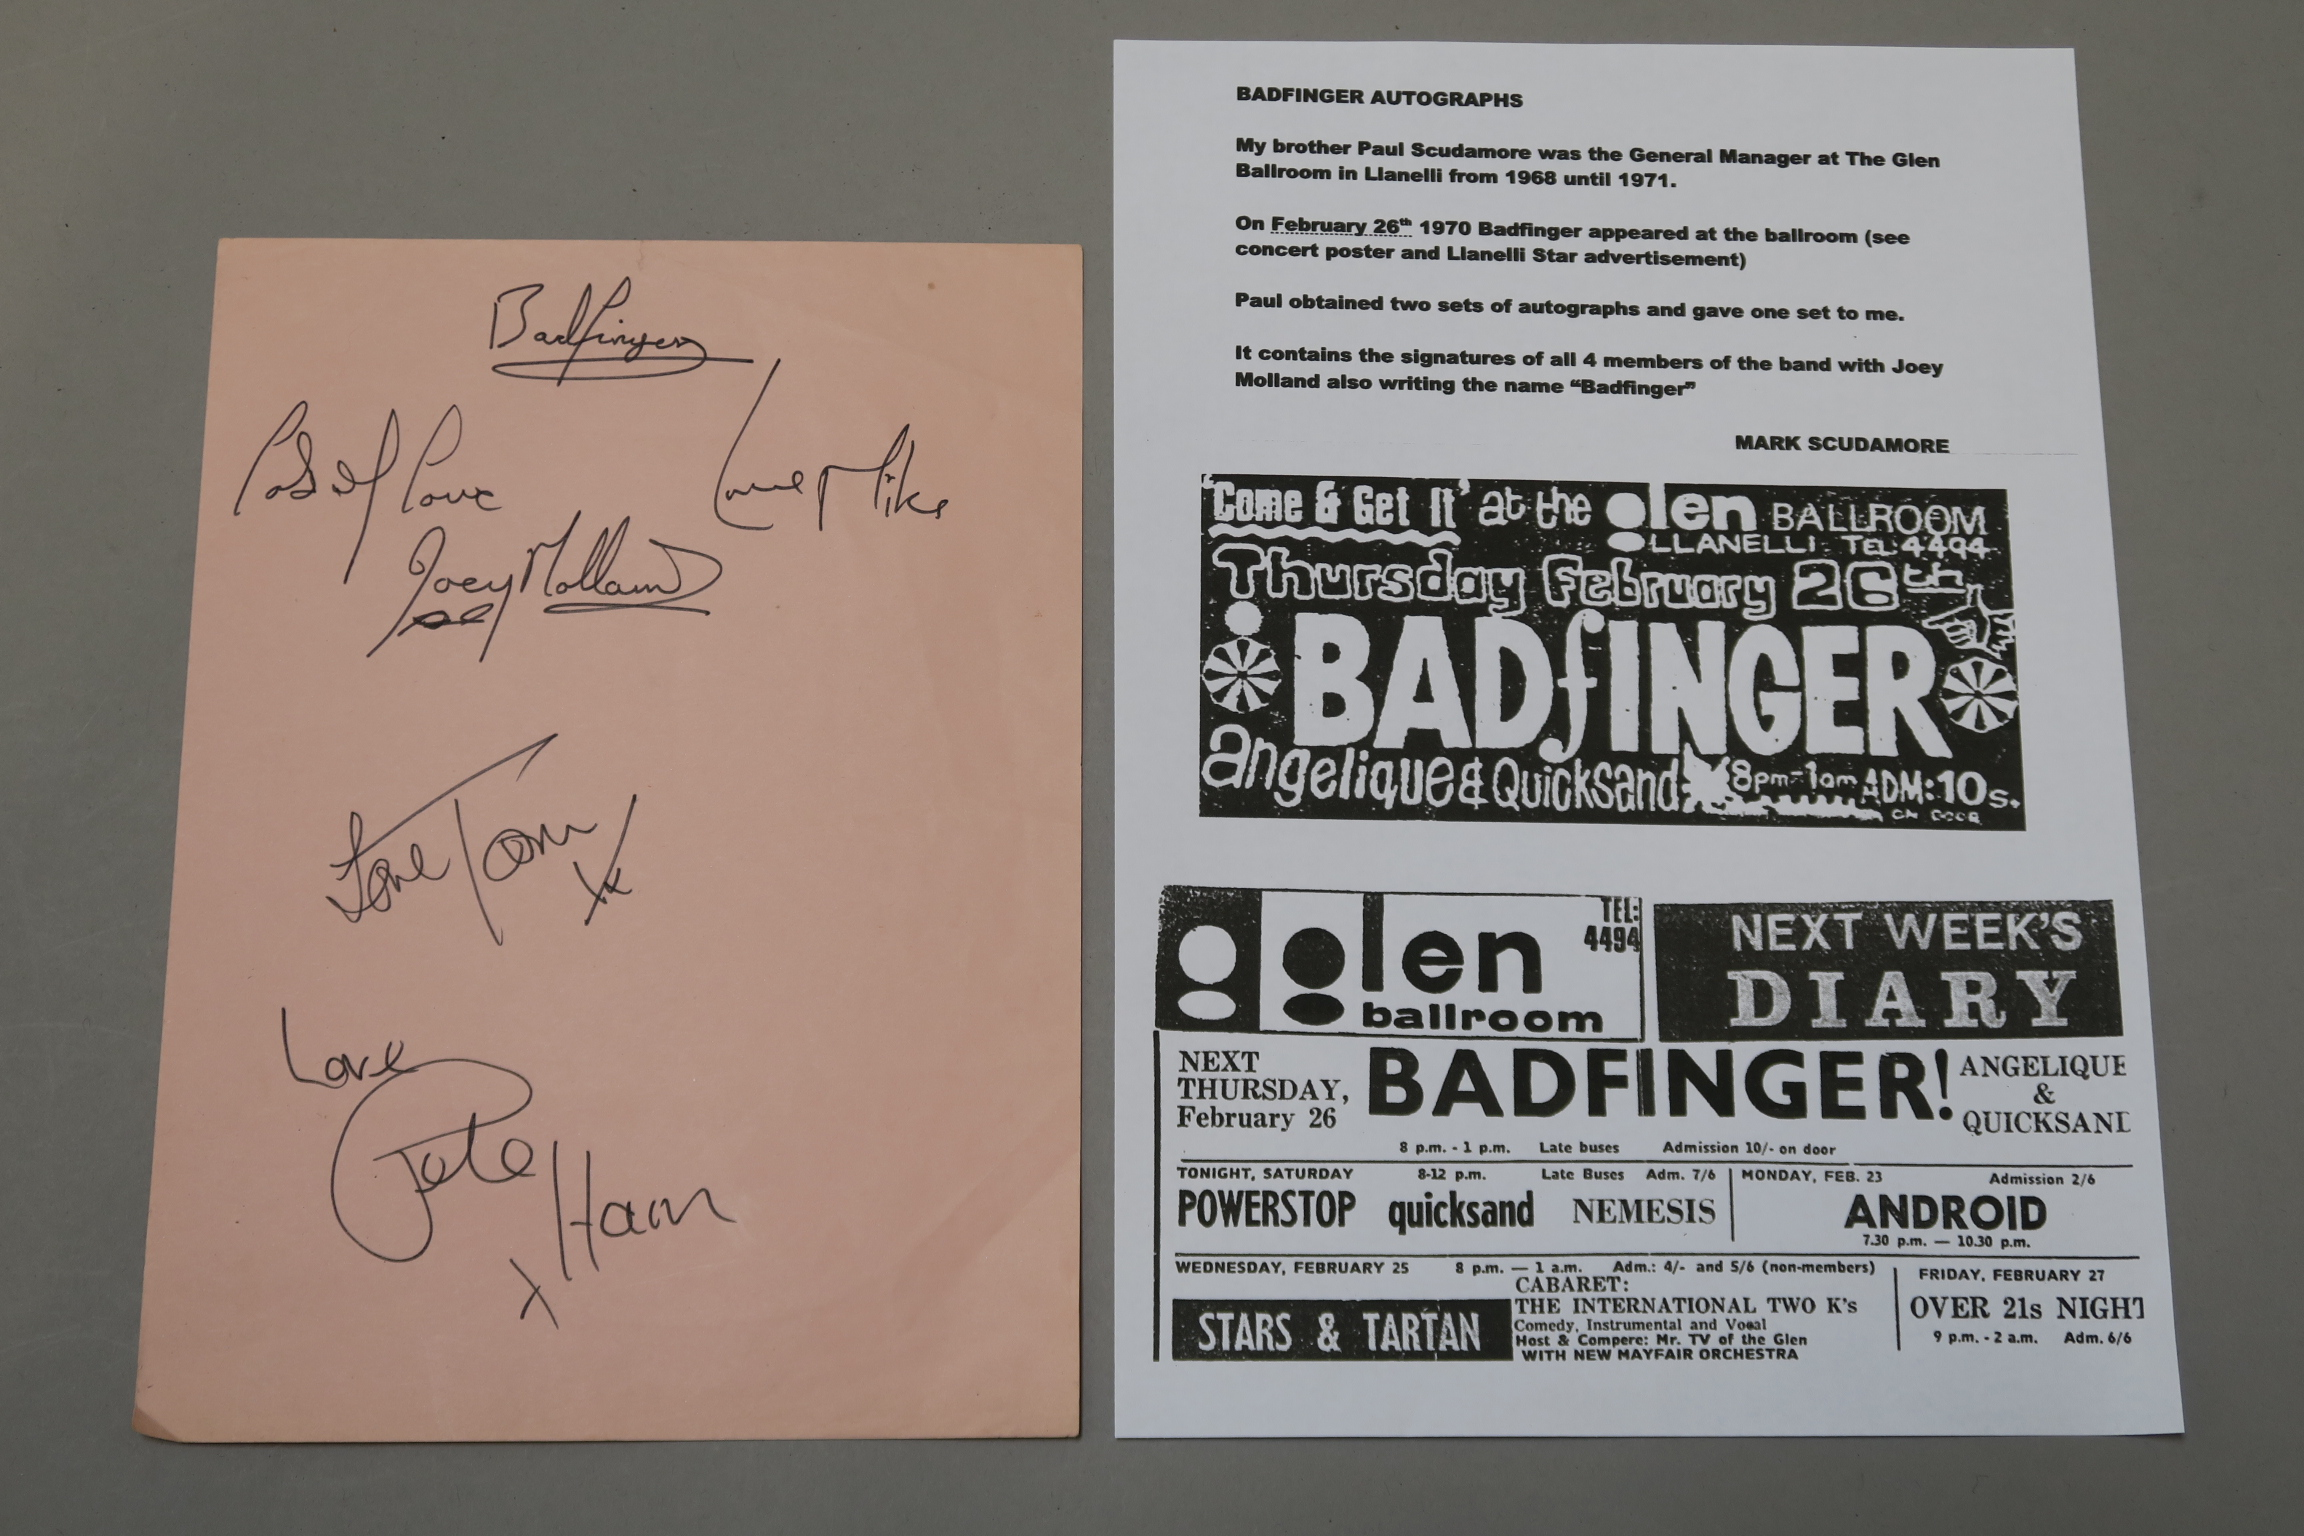 Lot 10 - Badfinger autographs obtained from the Glen Ballroom on February 26th 1970.